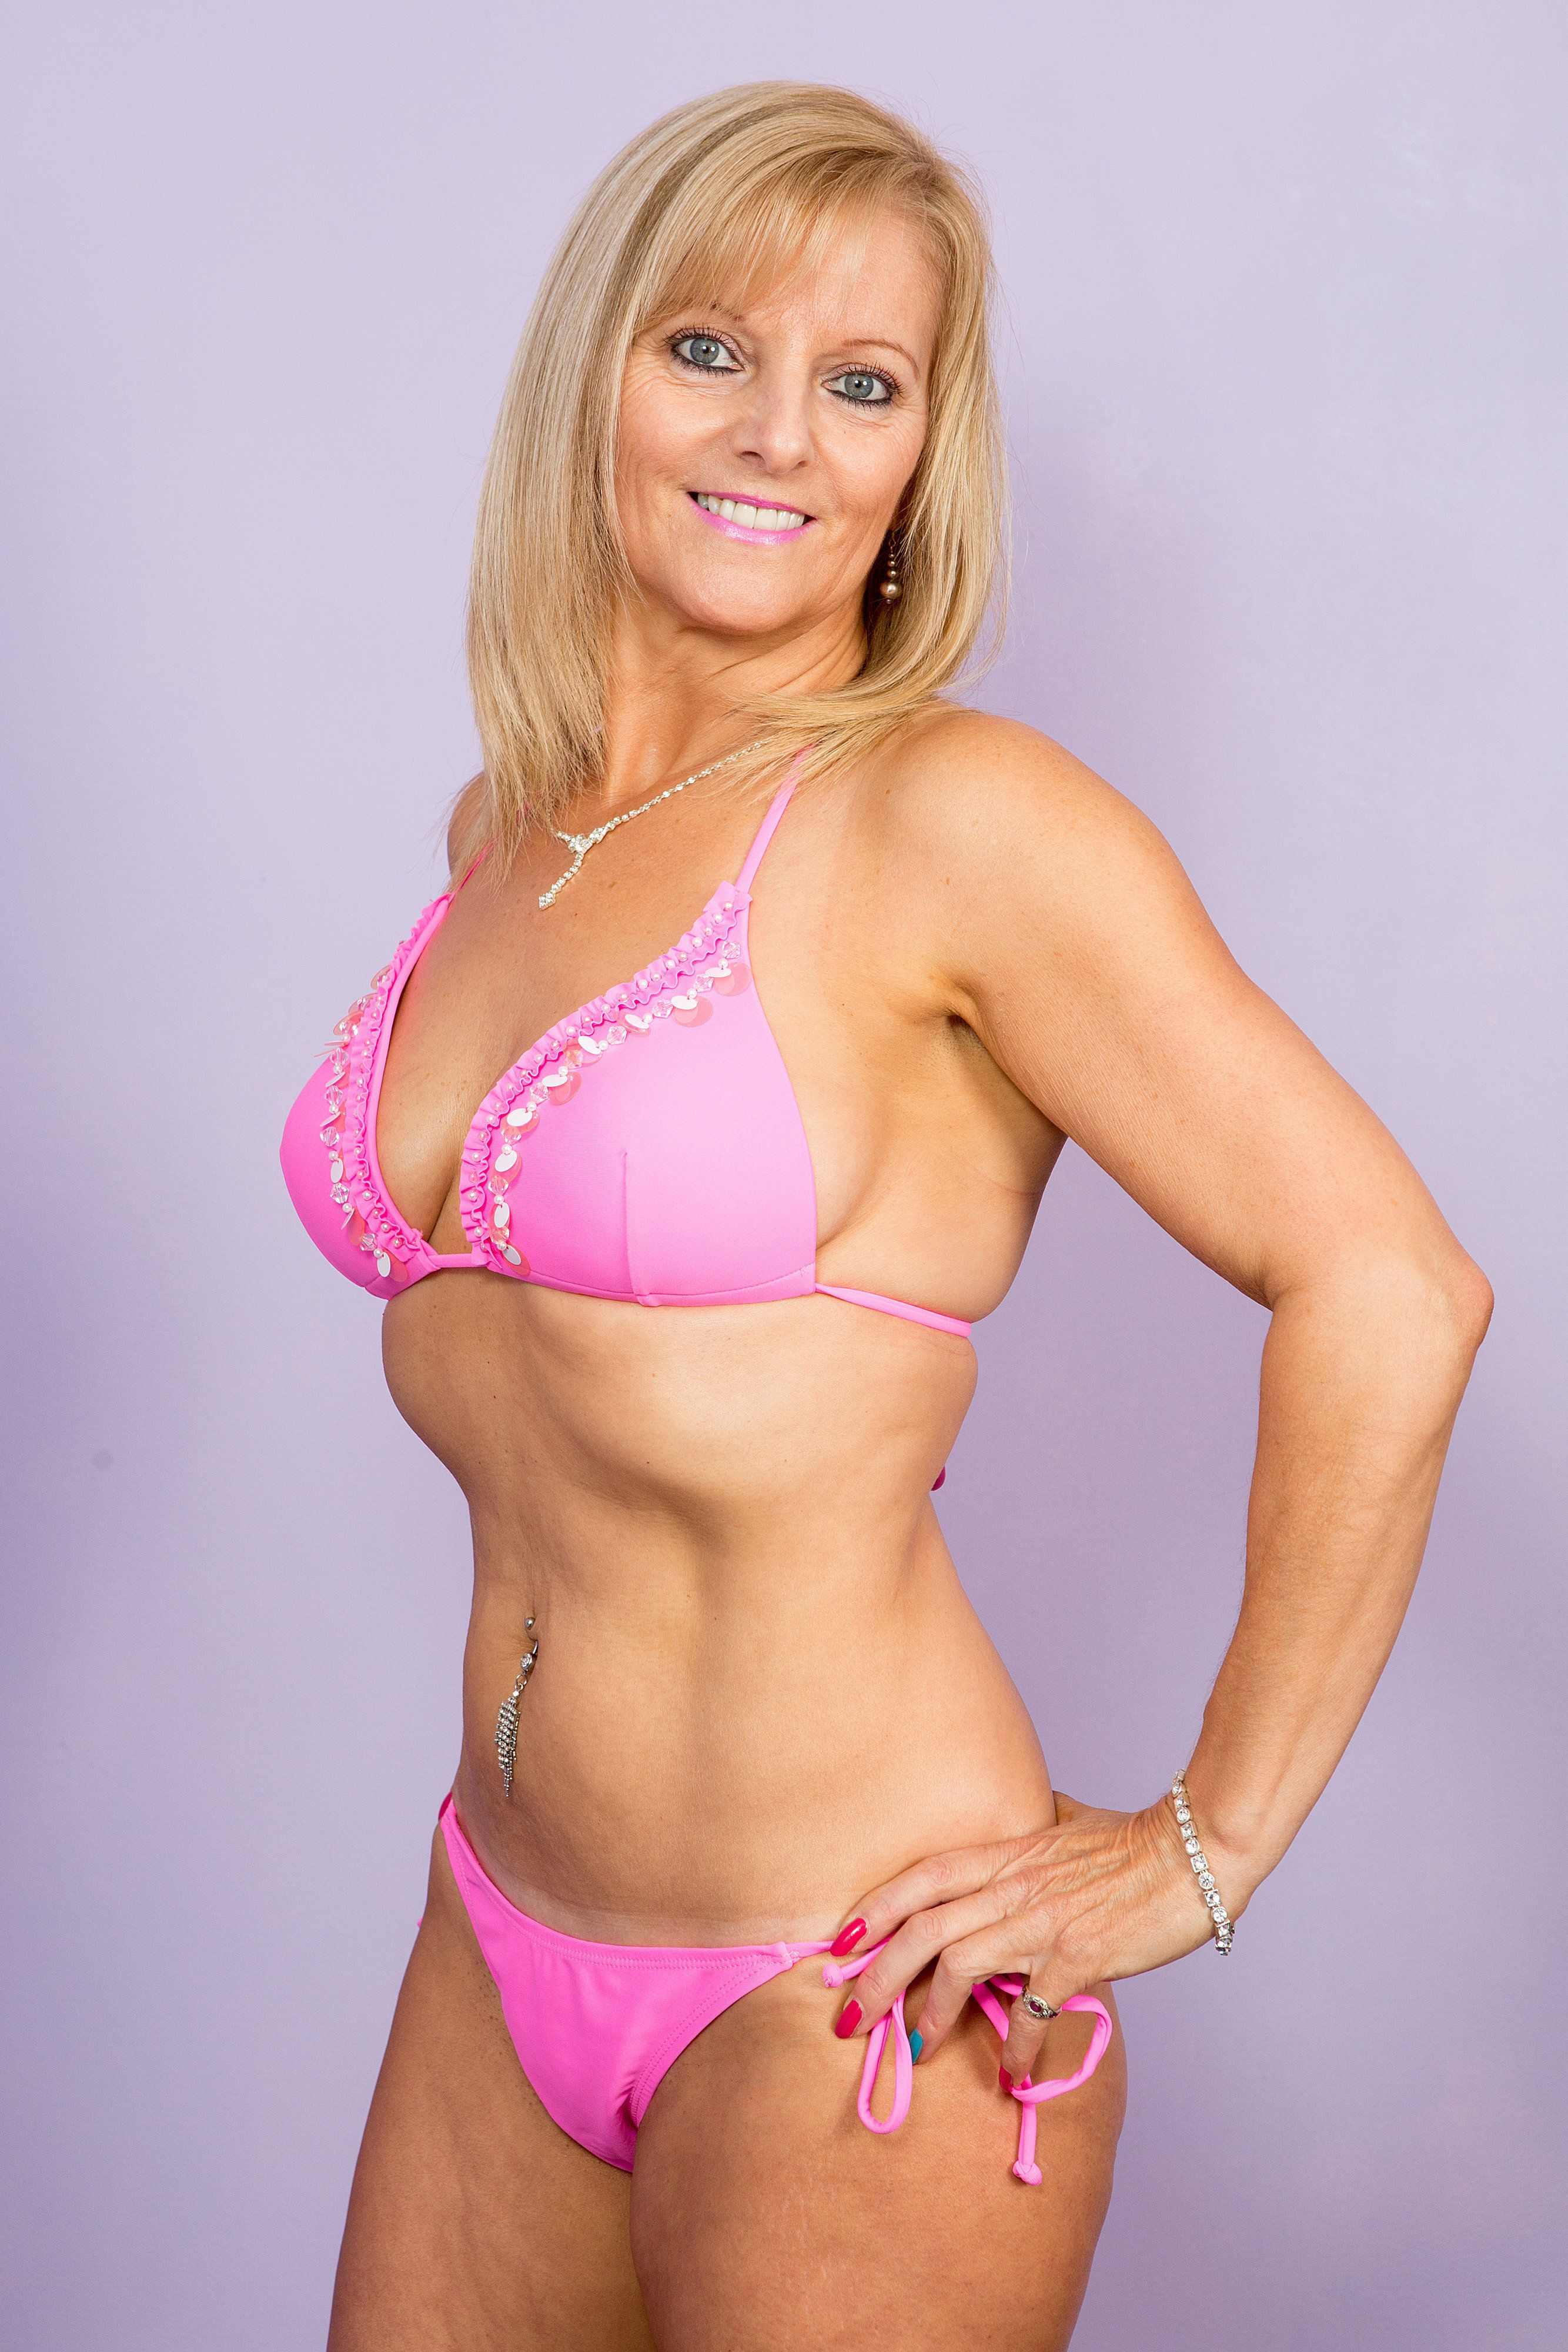 Amanda Booth, 54, a Gran from Severn Beach, who is bidding to become Ms Galaxy 2016. A glamorous grandmother is competing in the final of a beauty pageant against women decades younger than her - and even posing in a bikini. Trendy Amanda Booth, 54, was devastated when her son Stuart, 30, was killed in December 2008, and vowed to live life to the full. But it took her until this year to finally fulfill her modelling dreams by entering a beauty pageant, and next month will compete in the over 30s competition Ms Galaxy. Competition bosses confirmed she is the oldest competitor, and is likely to be more than 20 years older than her fellow finalists.